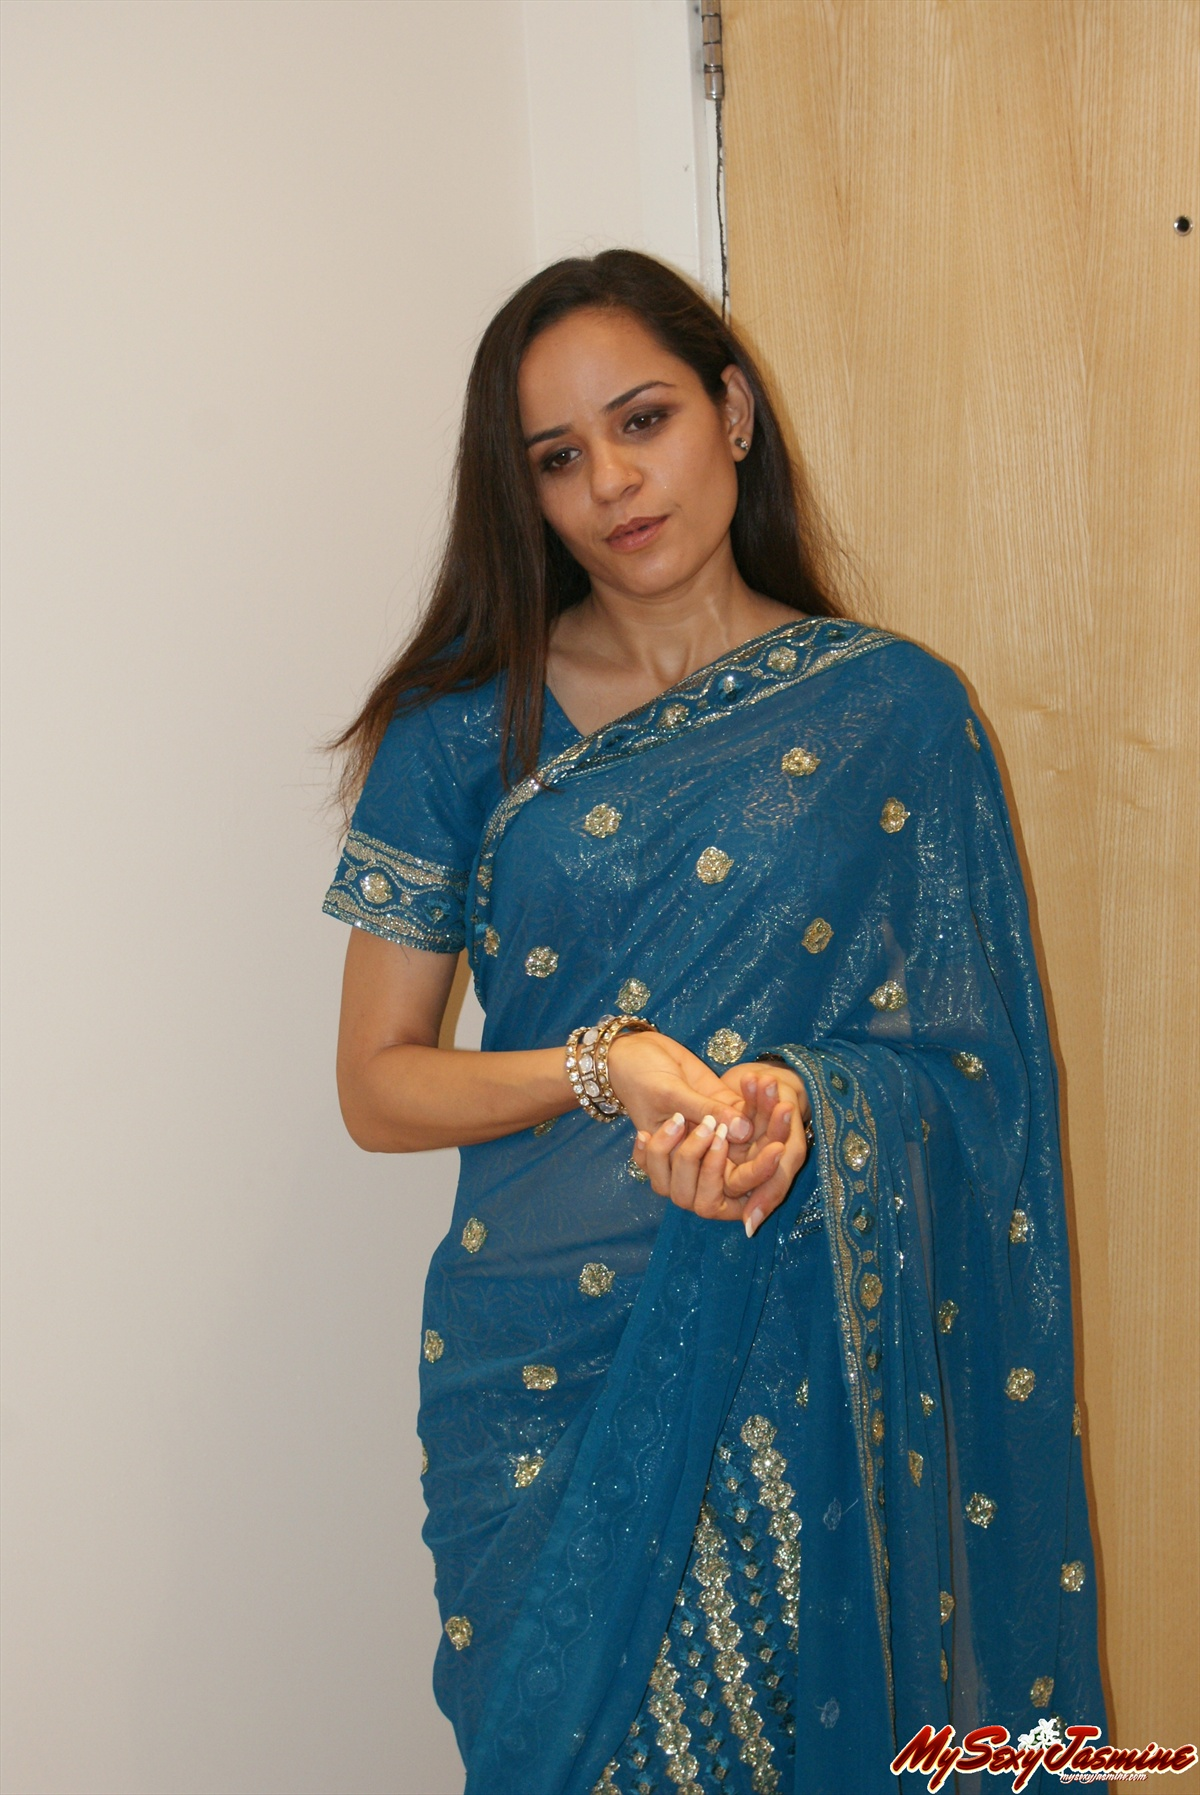 Pic gal 006. Indian babe jasmine in traditional saree showing off